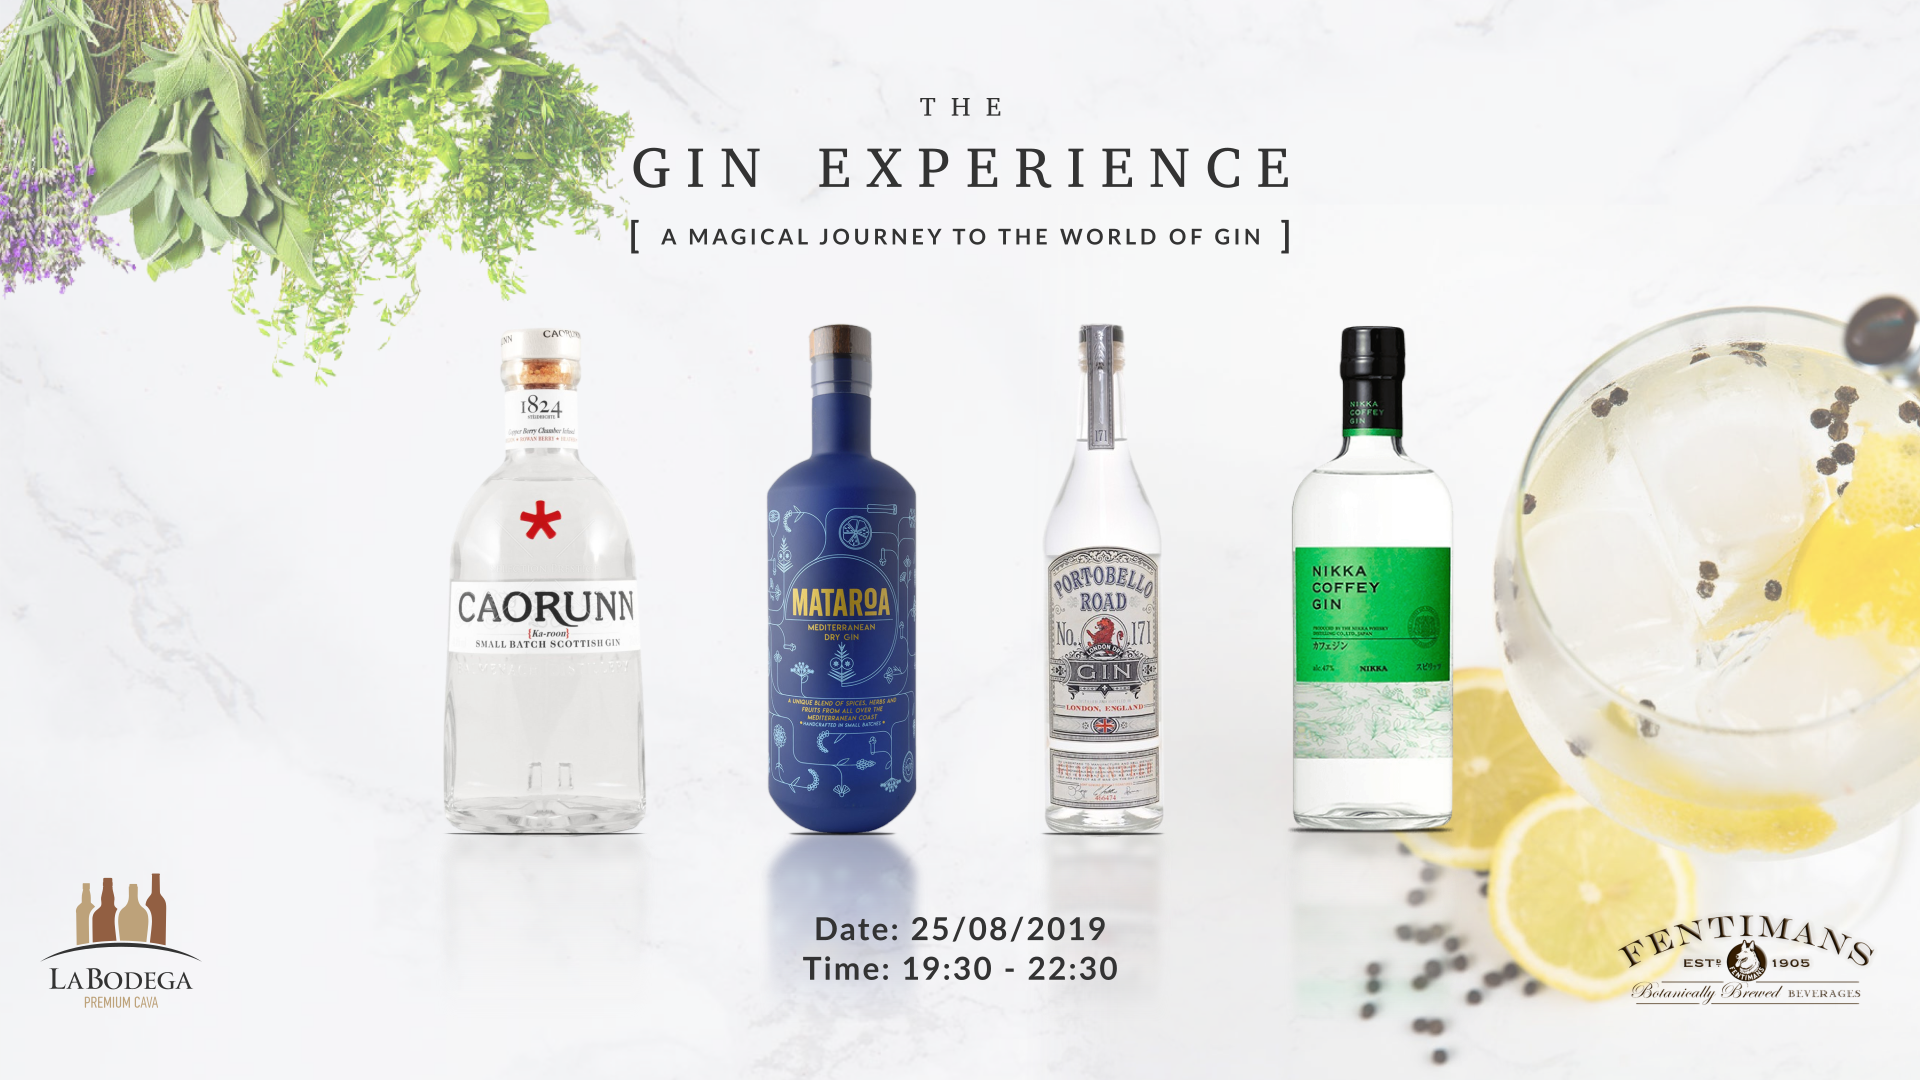 The Gin Experience